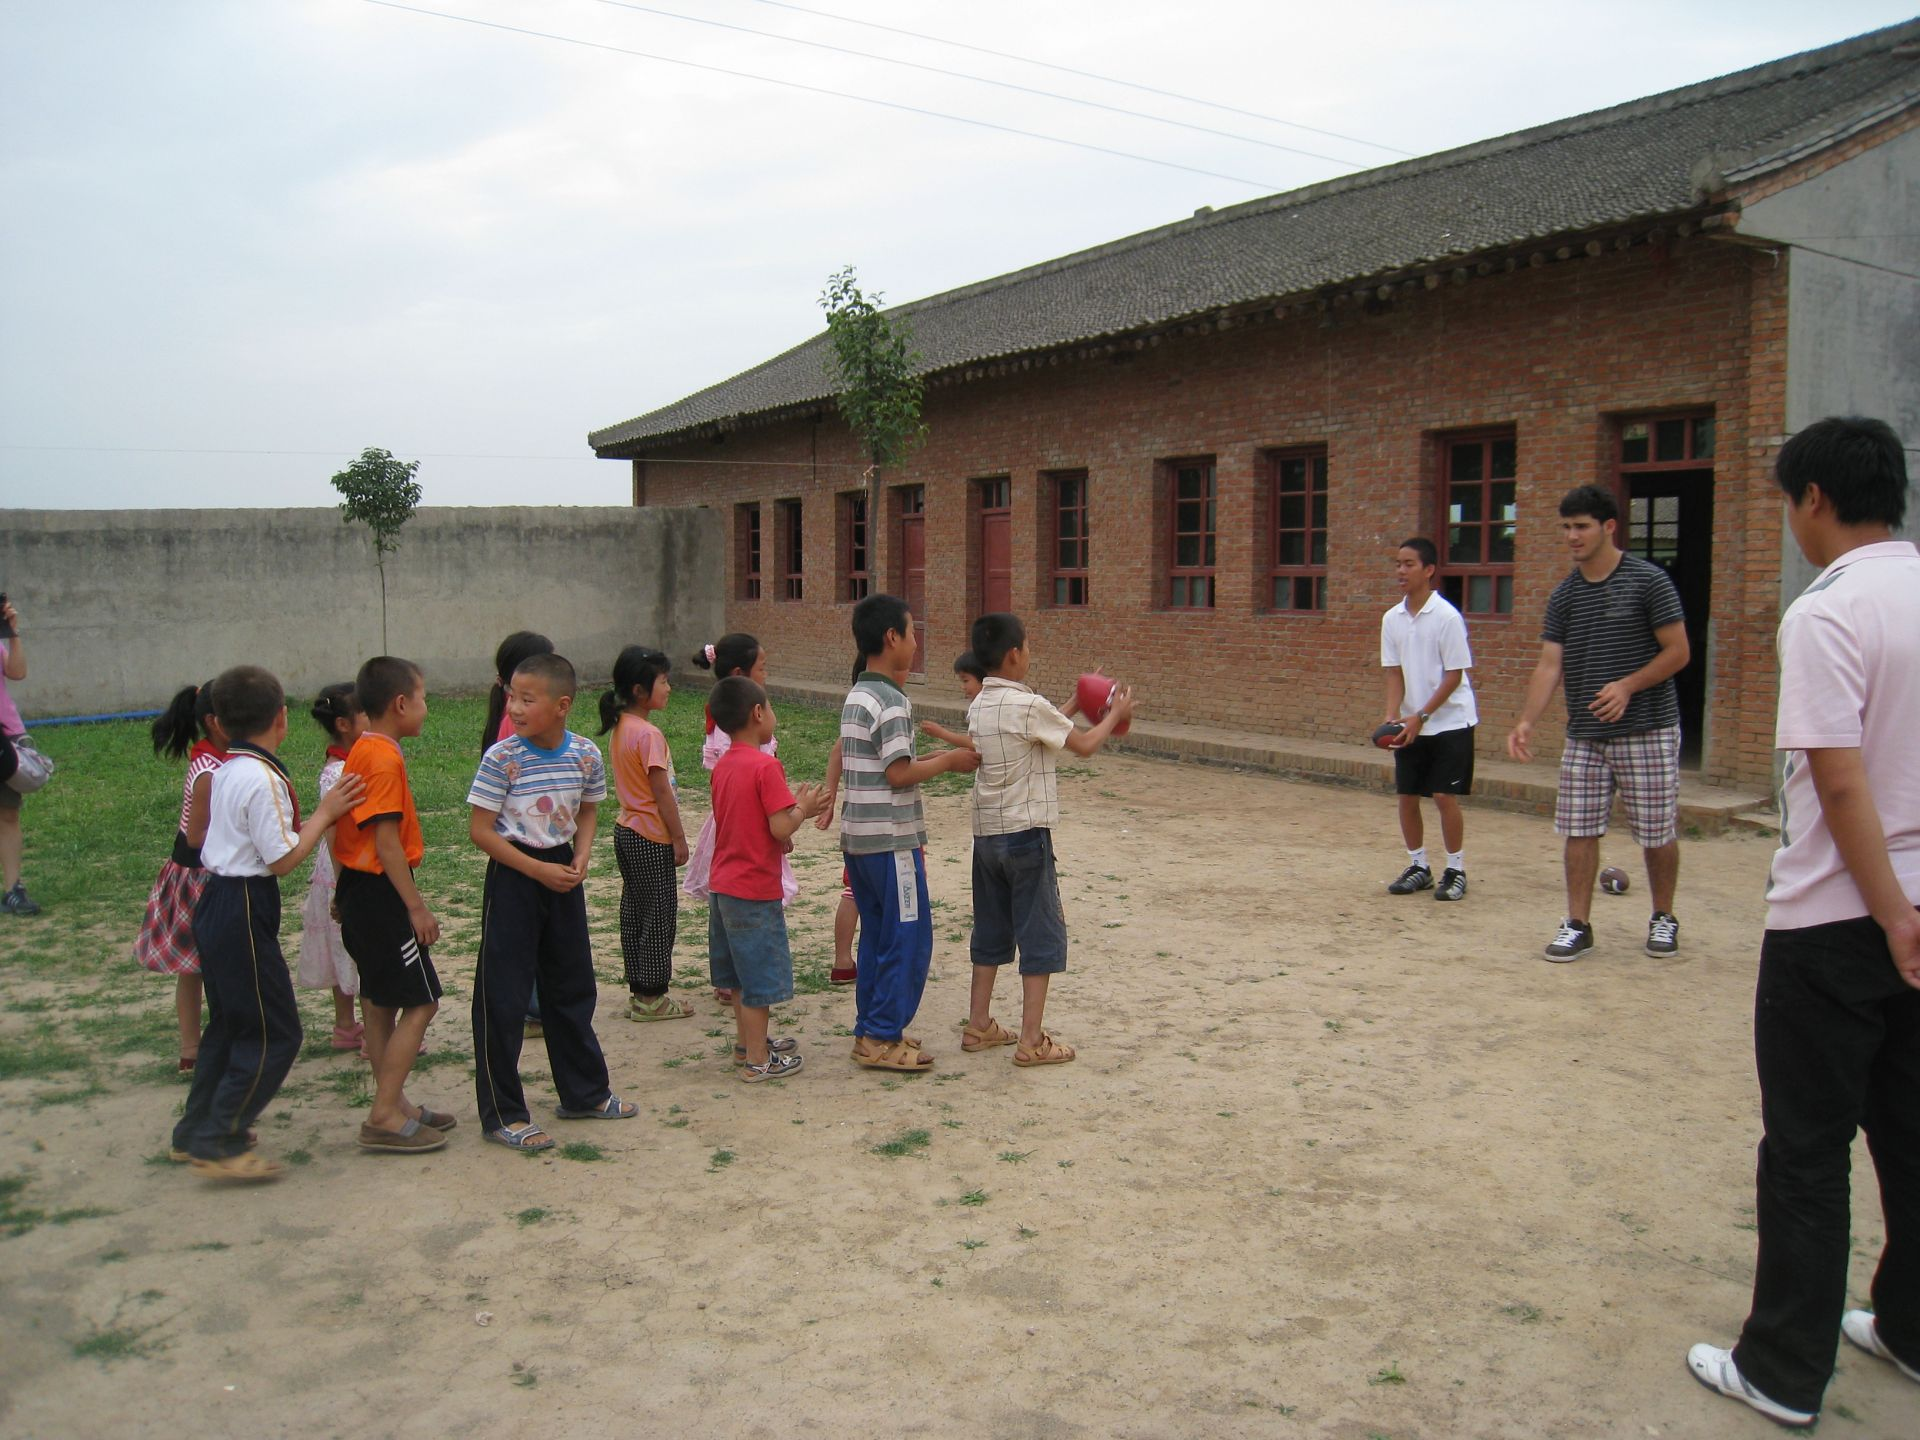 Service learning projects/community services included teaching English and sports to elementary school students in a rural village school; teaching English and interact with elementary to middle school students in a modern English school in Xian.